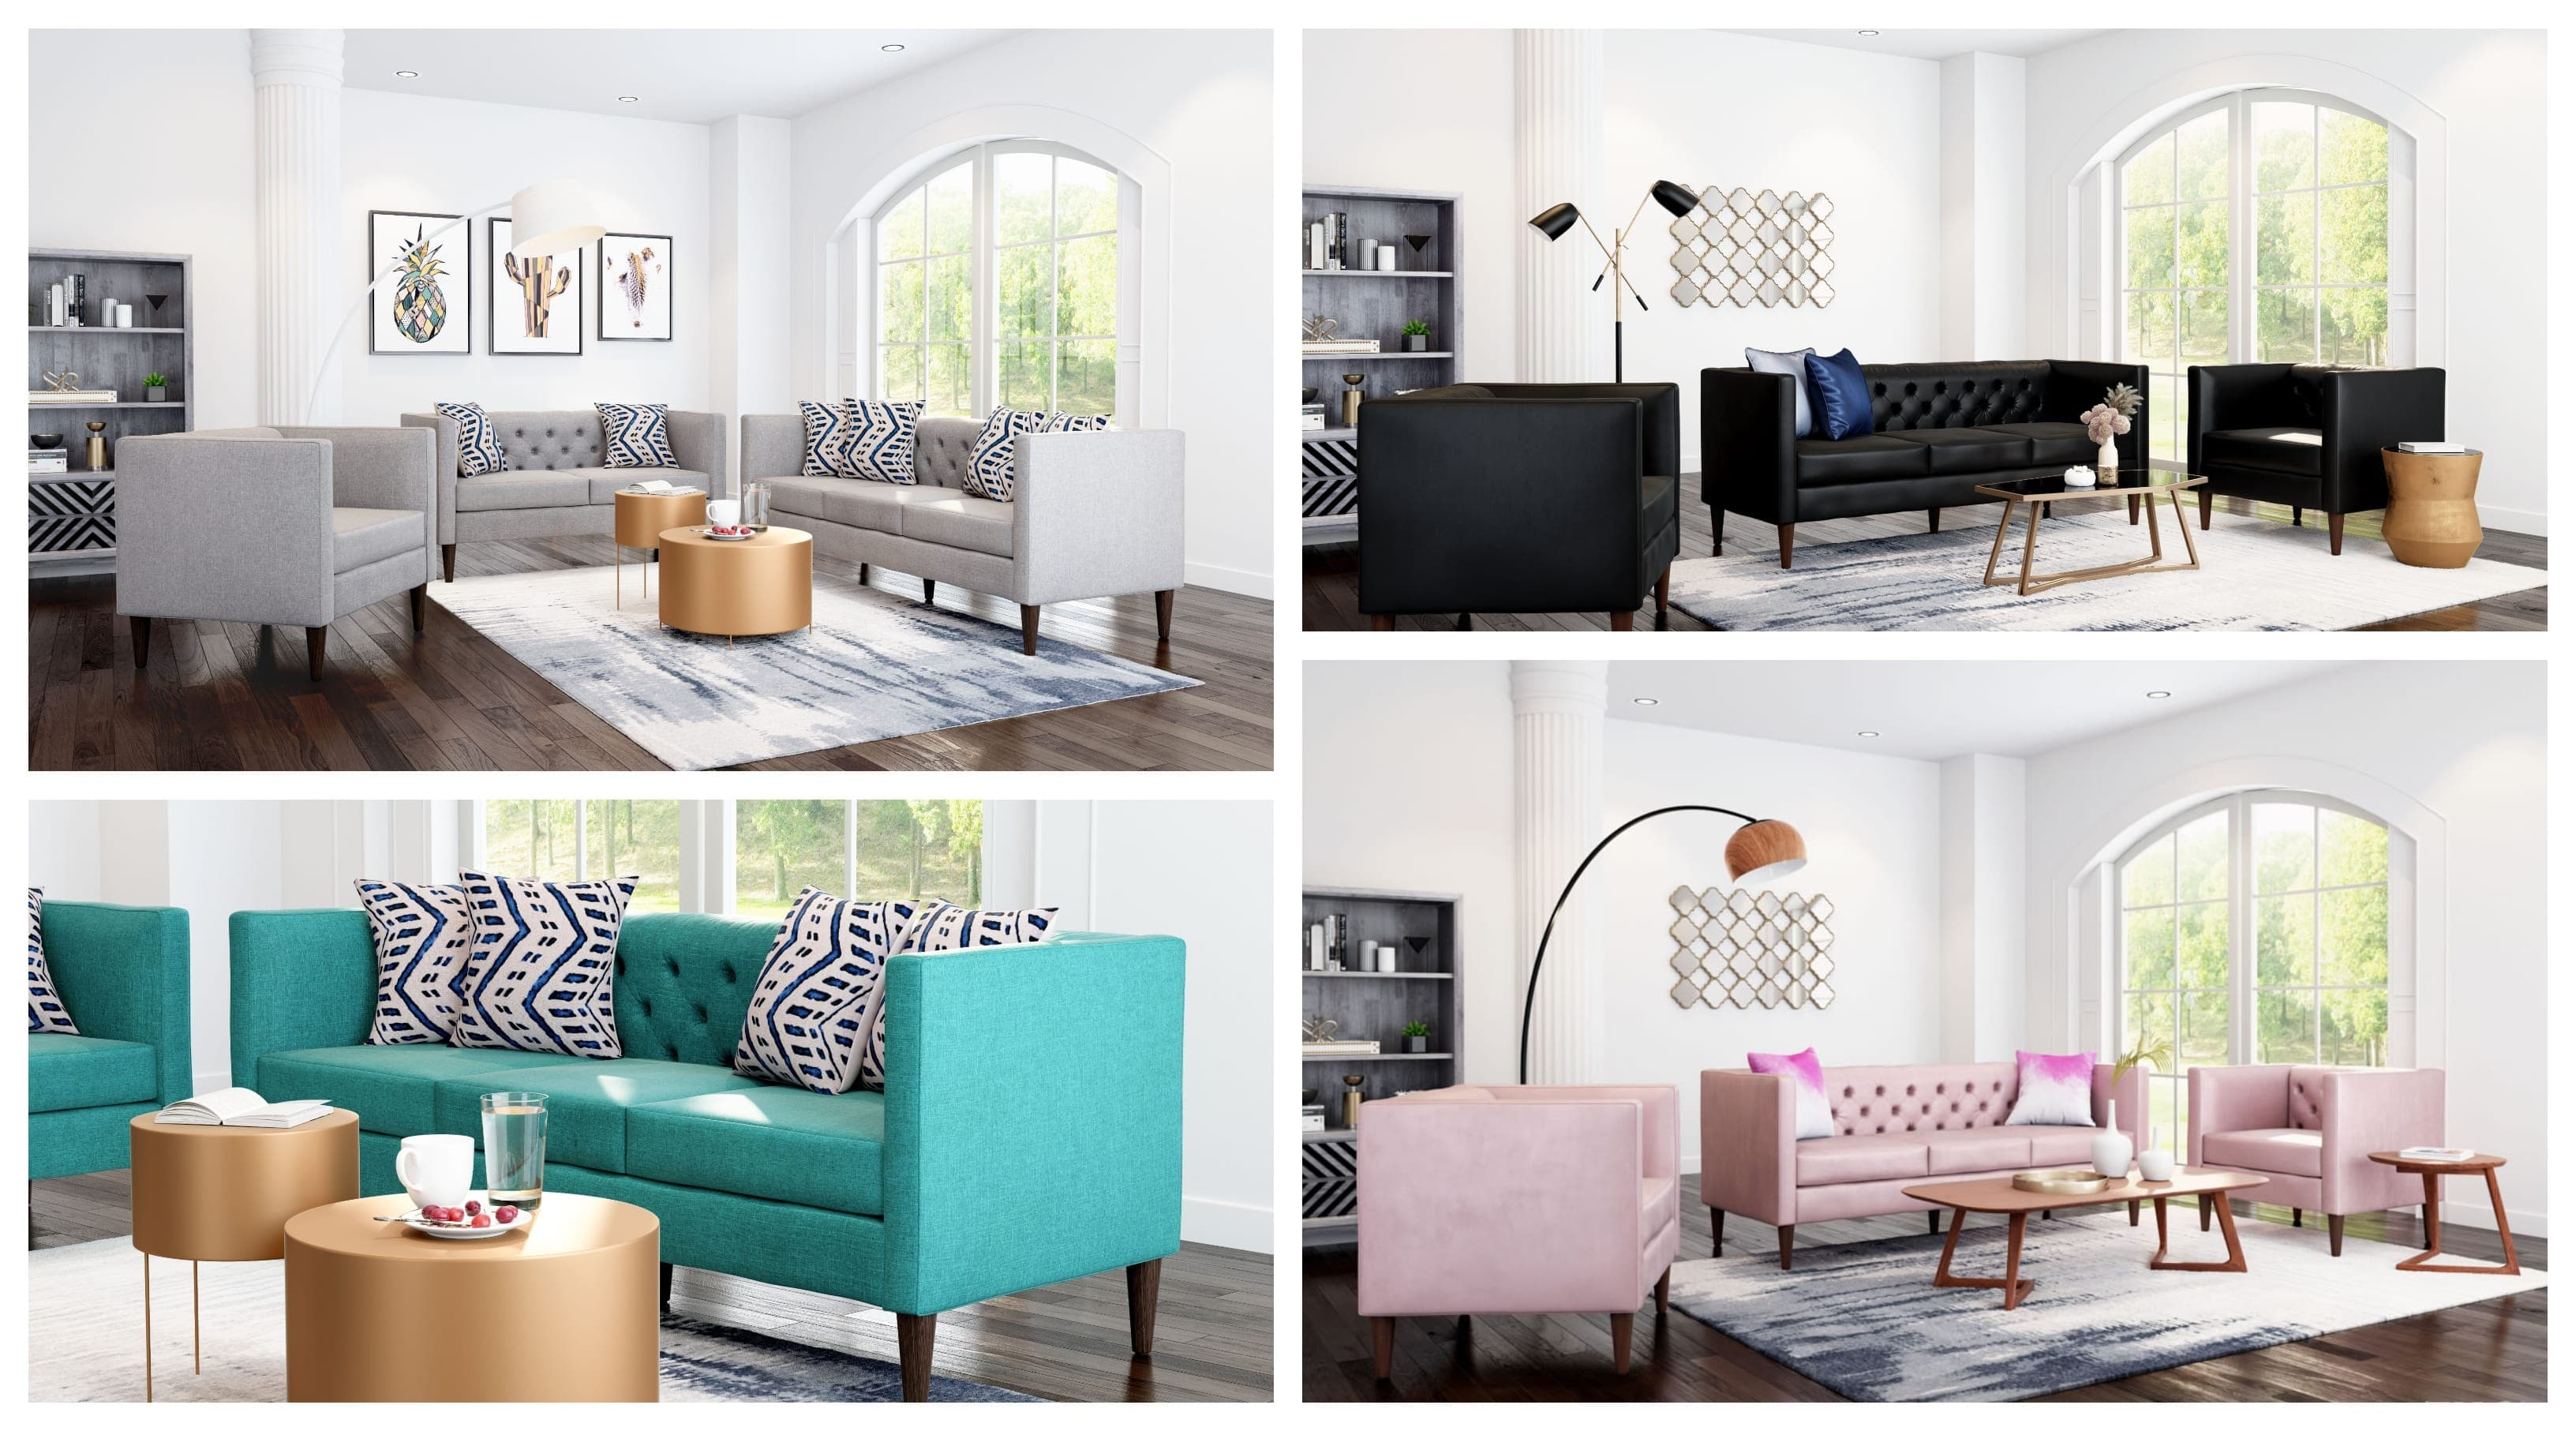 TIPS TO MAKE THE MOST OUT OF YOUR MEDIA ROOM